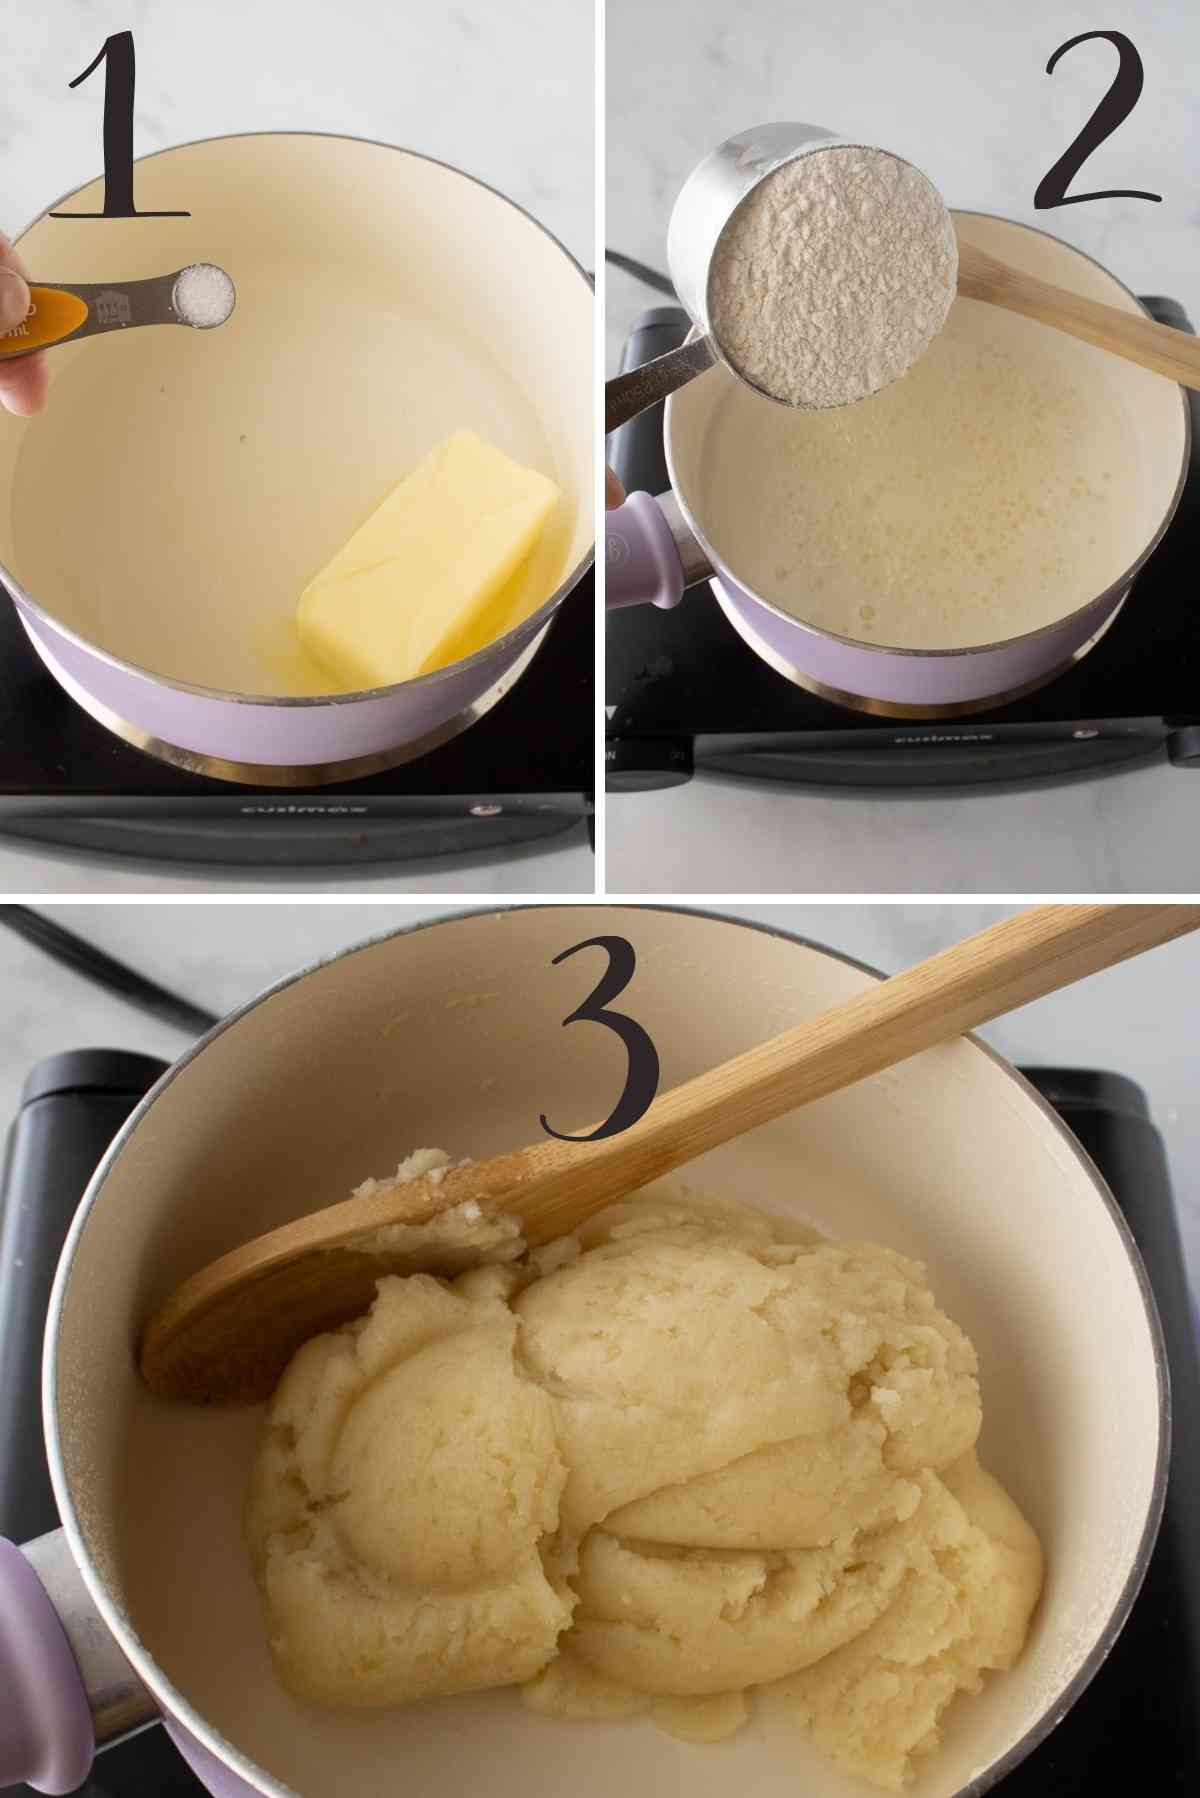 Butter and water brought to a boil; Flour added; mixture cooked into a ball.